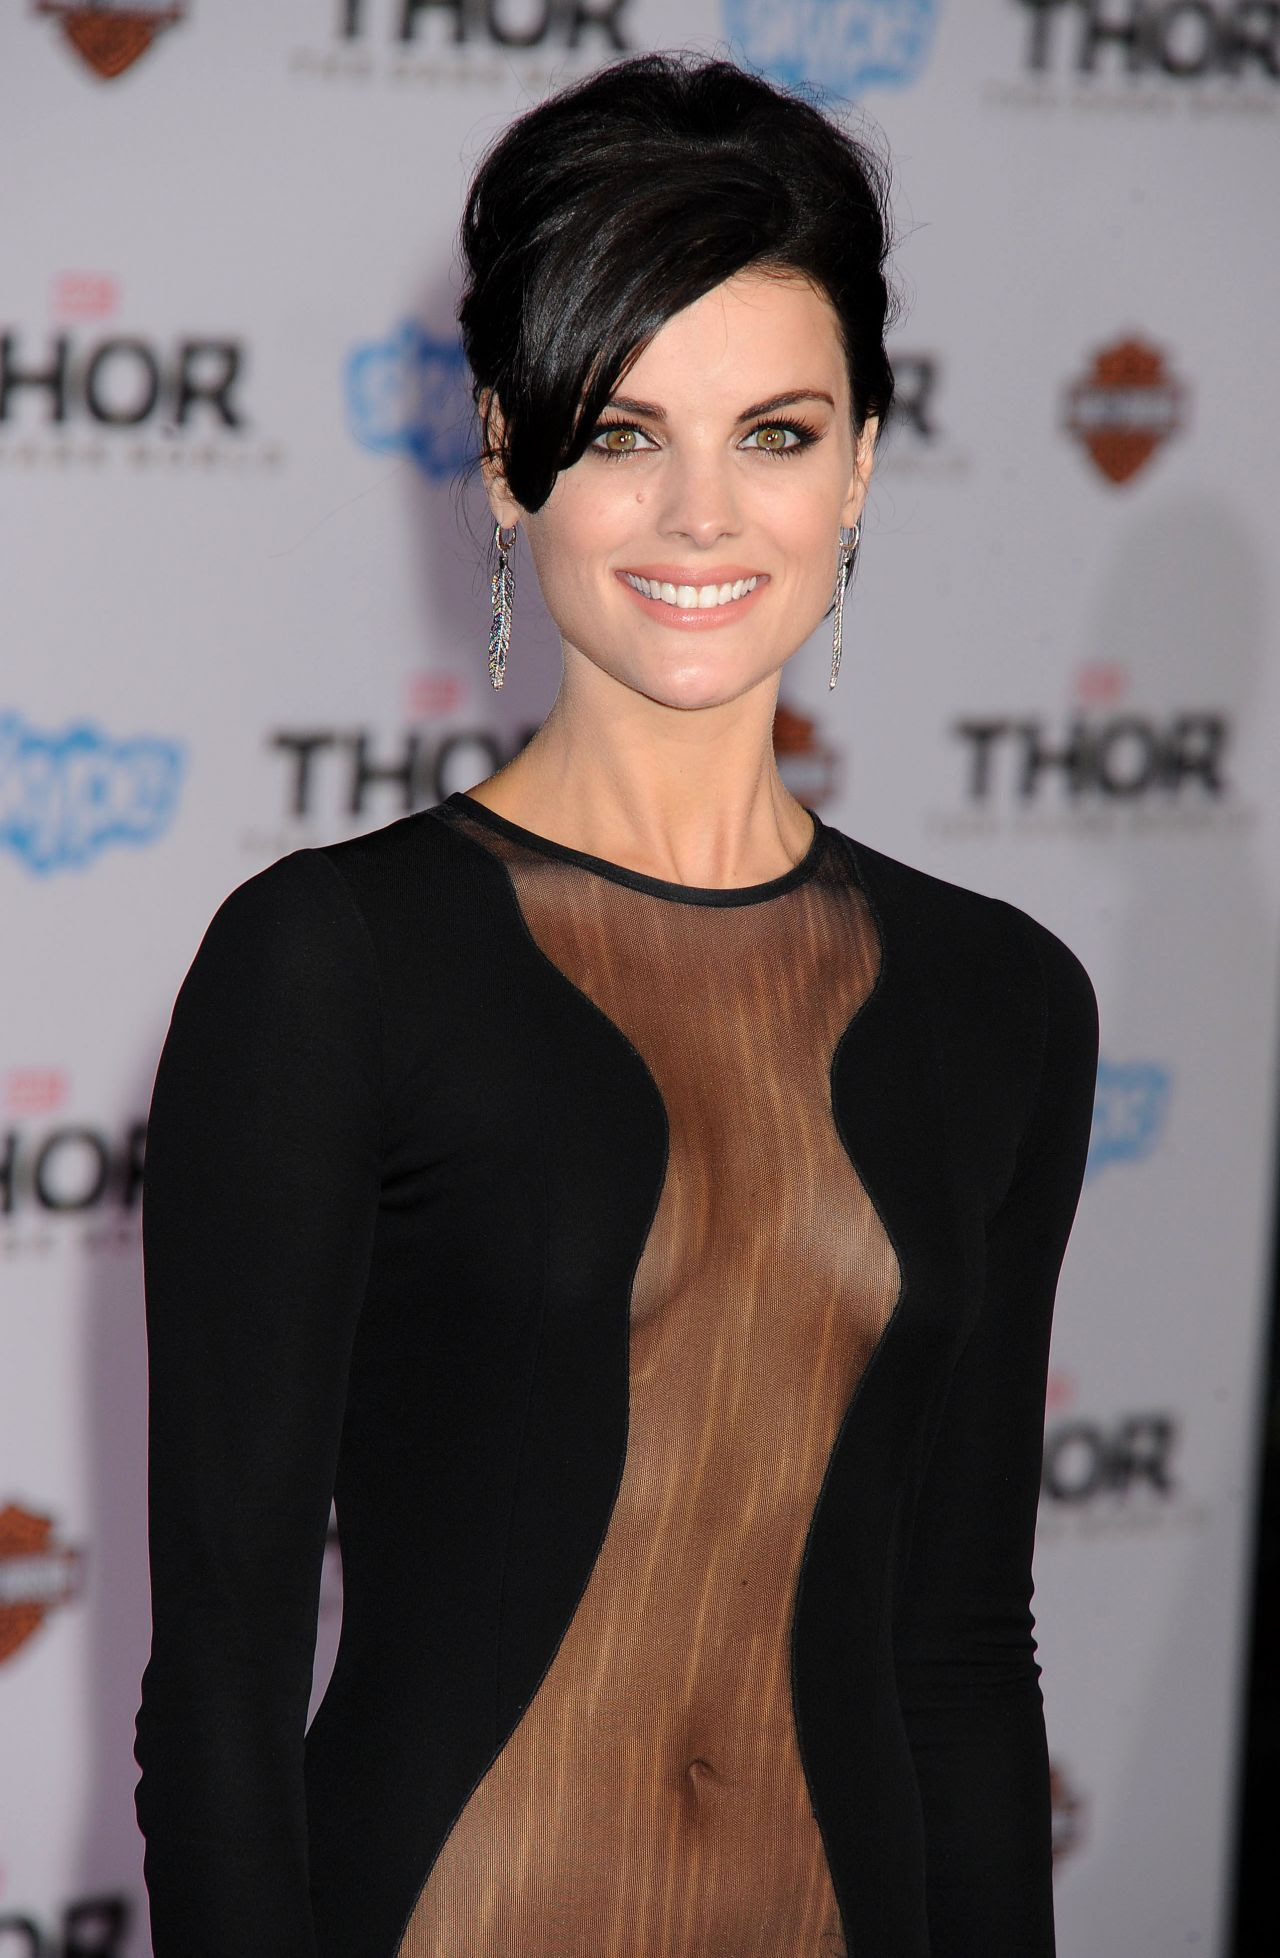 http://celebmafia.com/wp-content/uploads/2013/11/jaimie-alexander-thor-the-dark-world-premiere-in-hollywood-11-04-13-mq-hq-adds-_2.jpg